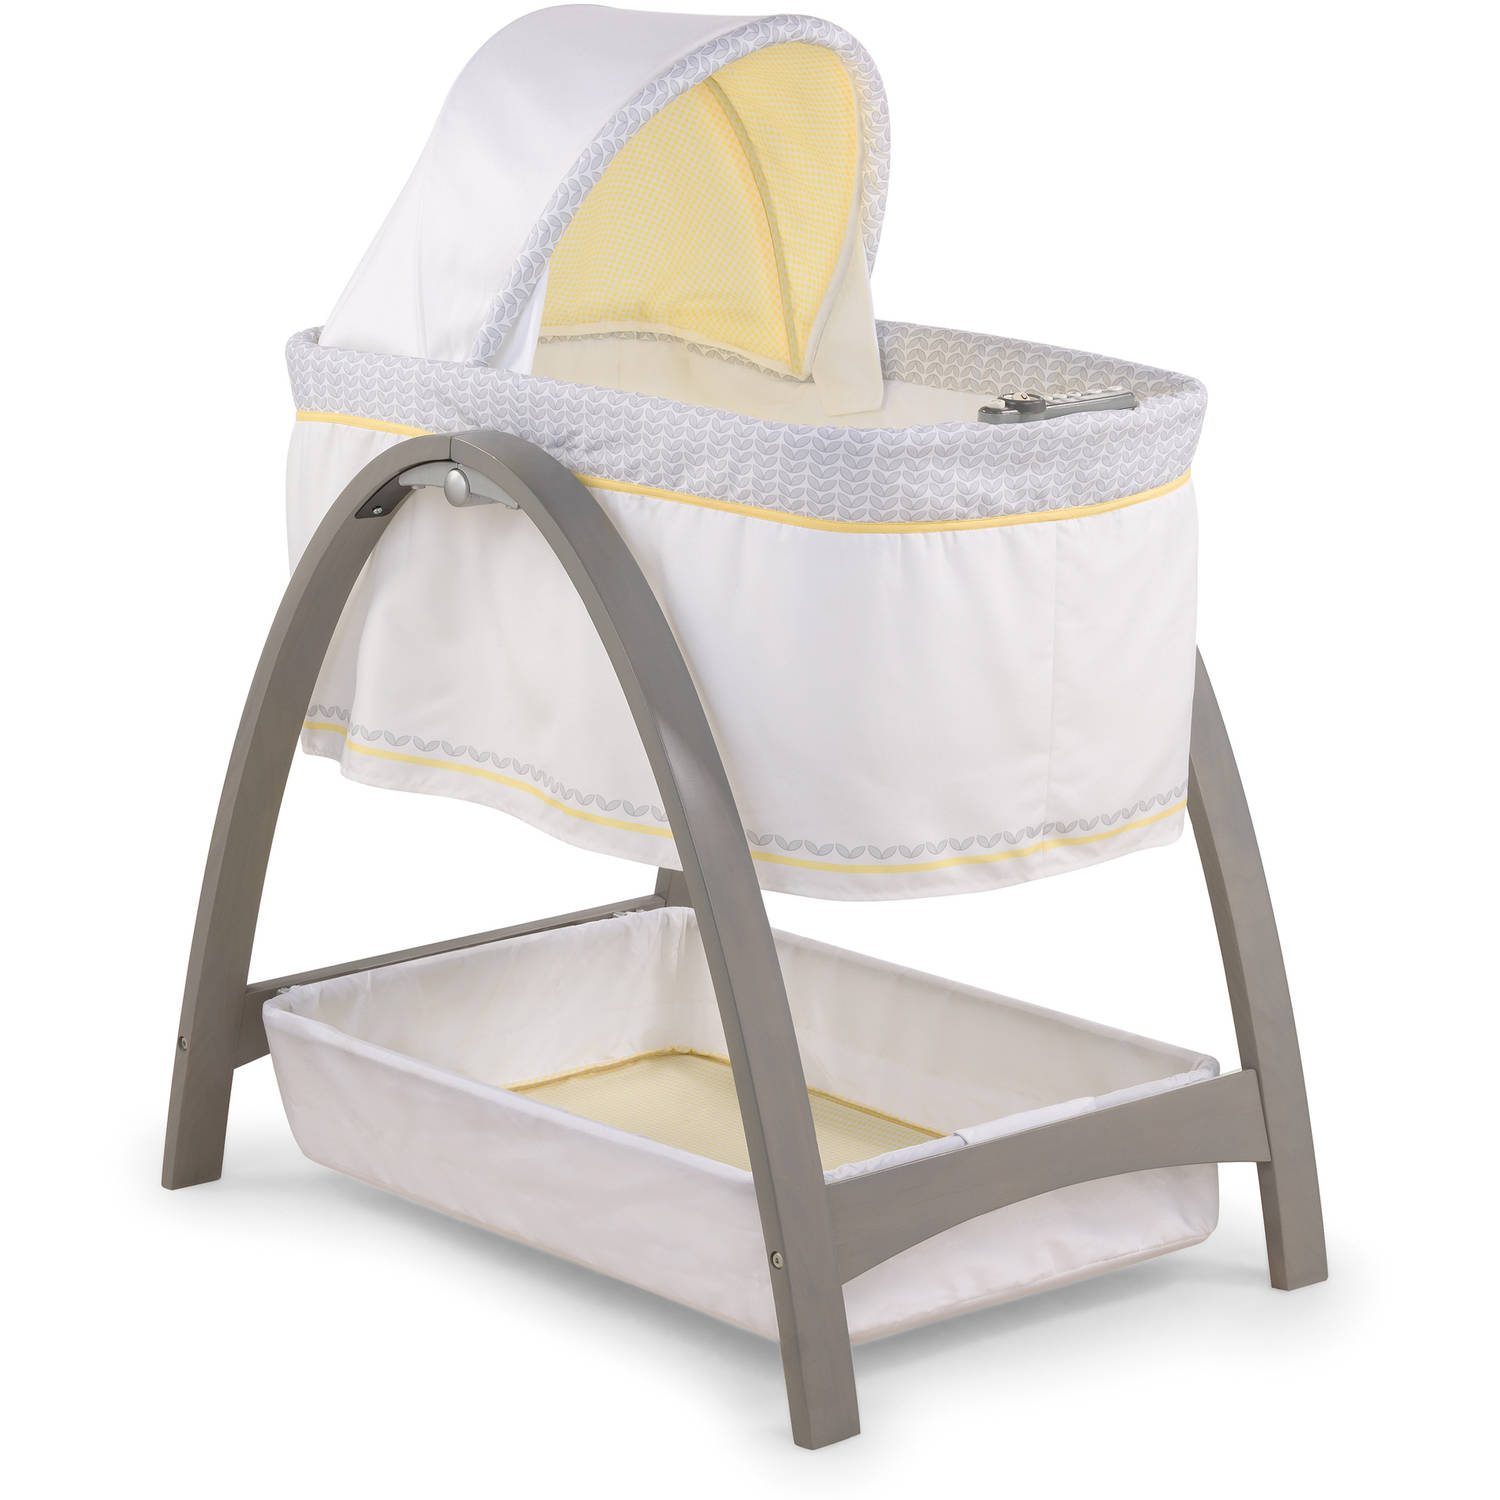 Summer Infant Products Bentwood Bassinet with Motion, Che...